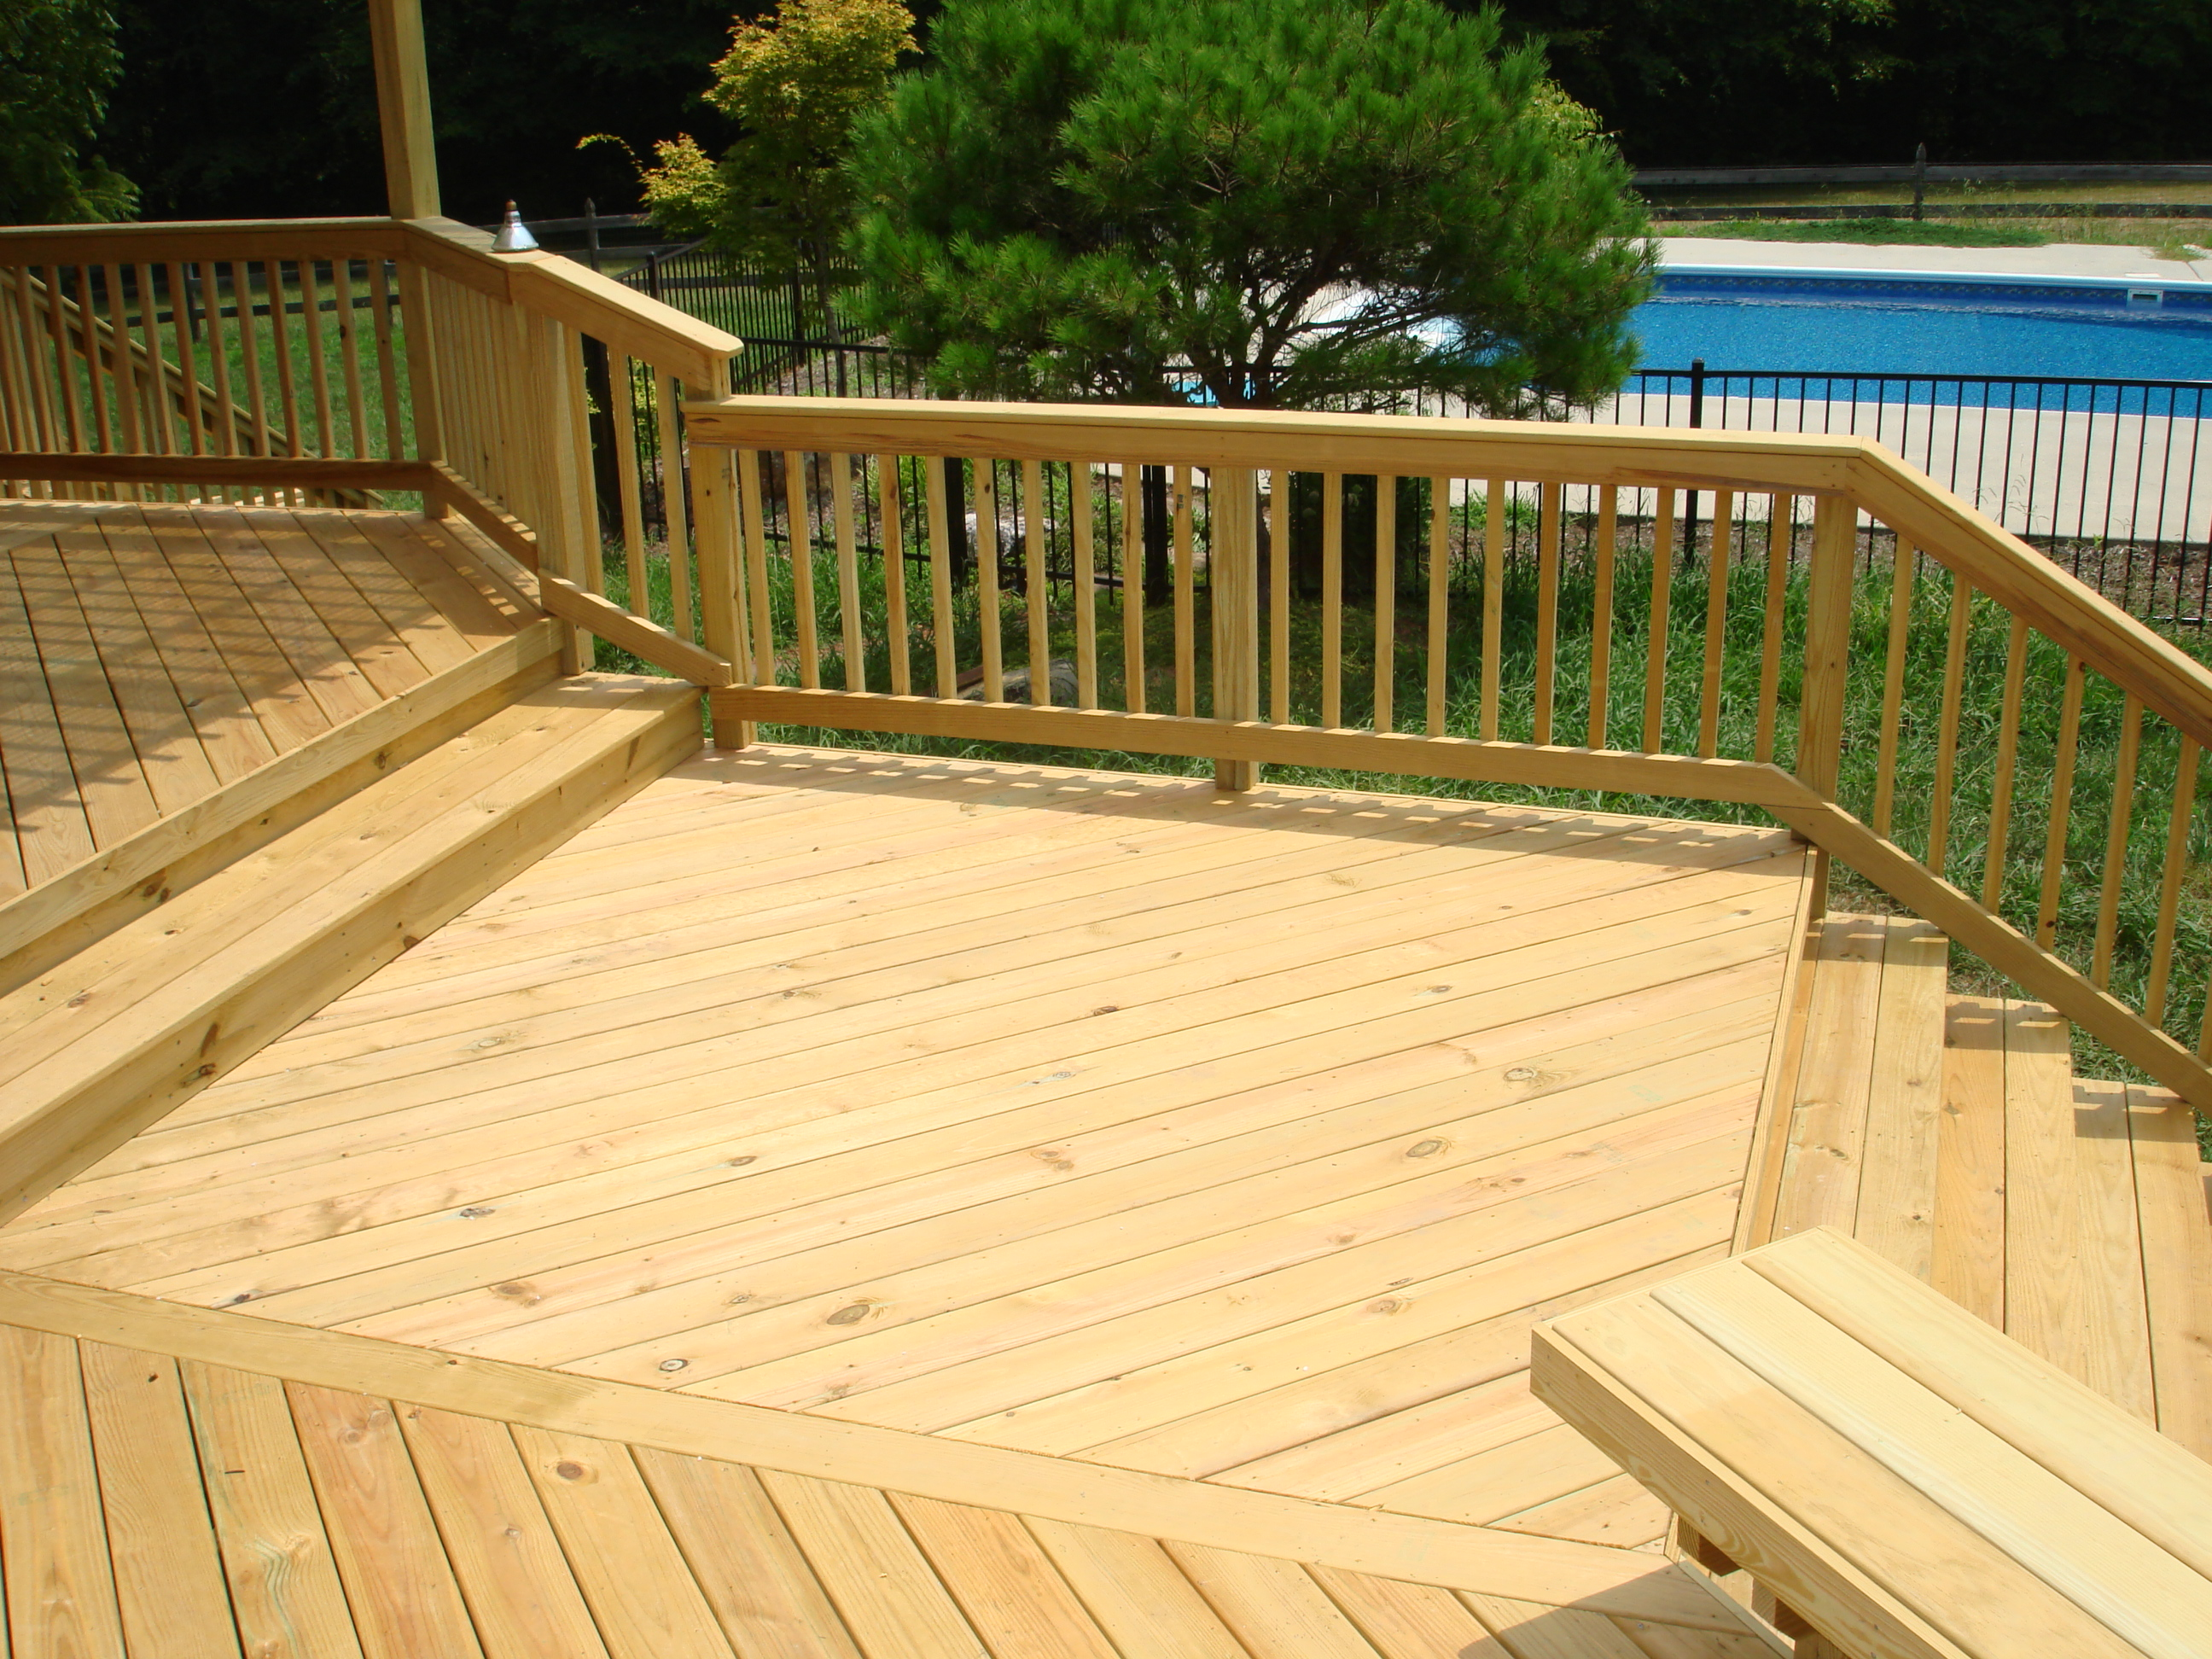 St. Louis Mo: Deck Design and Building Details by ... on Wood Patio Ideas id=87387